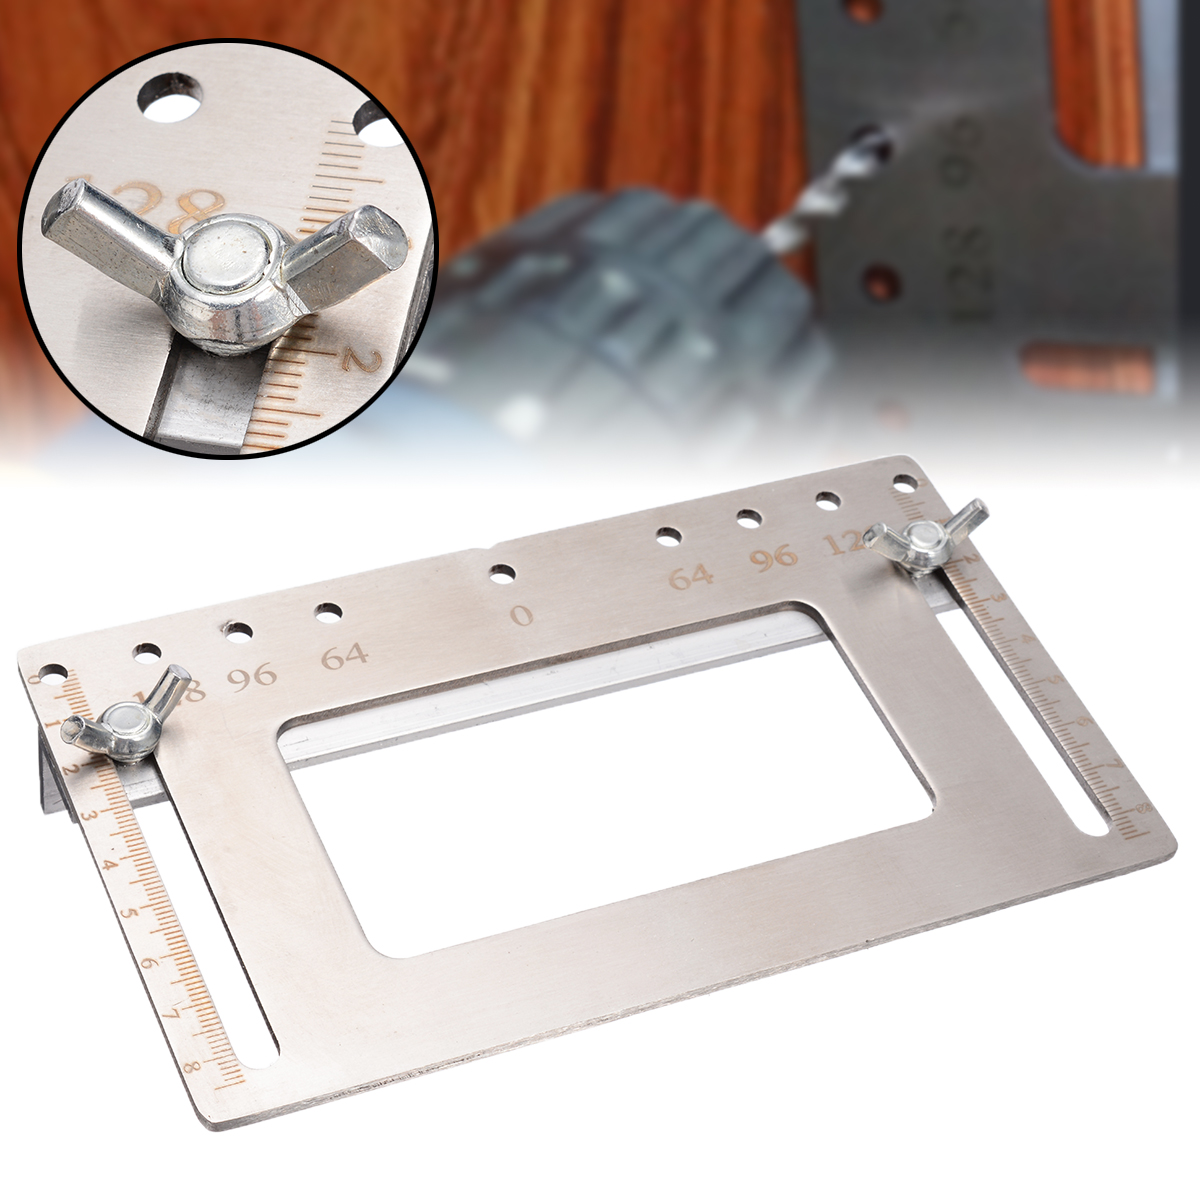 Stainless Steel Punch Locator Woodworking Tool Door Cabinet Knob Handle Hole Punch Locator Drilling Guide Tool